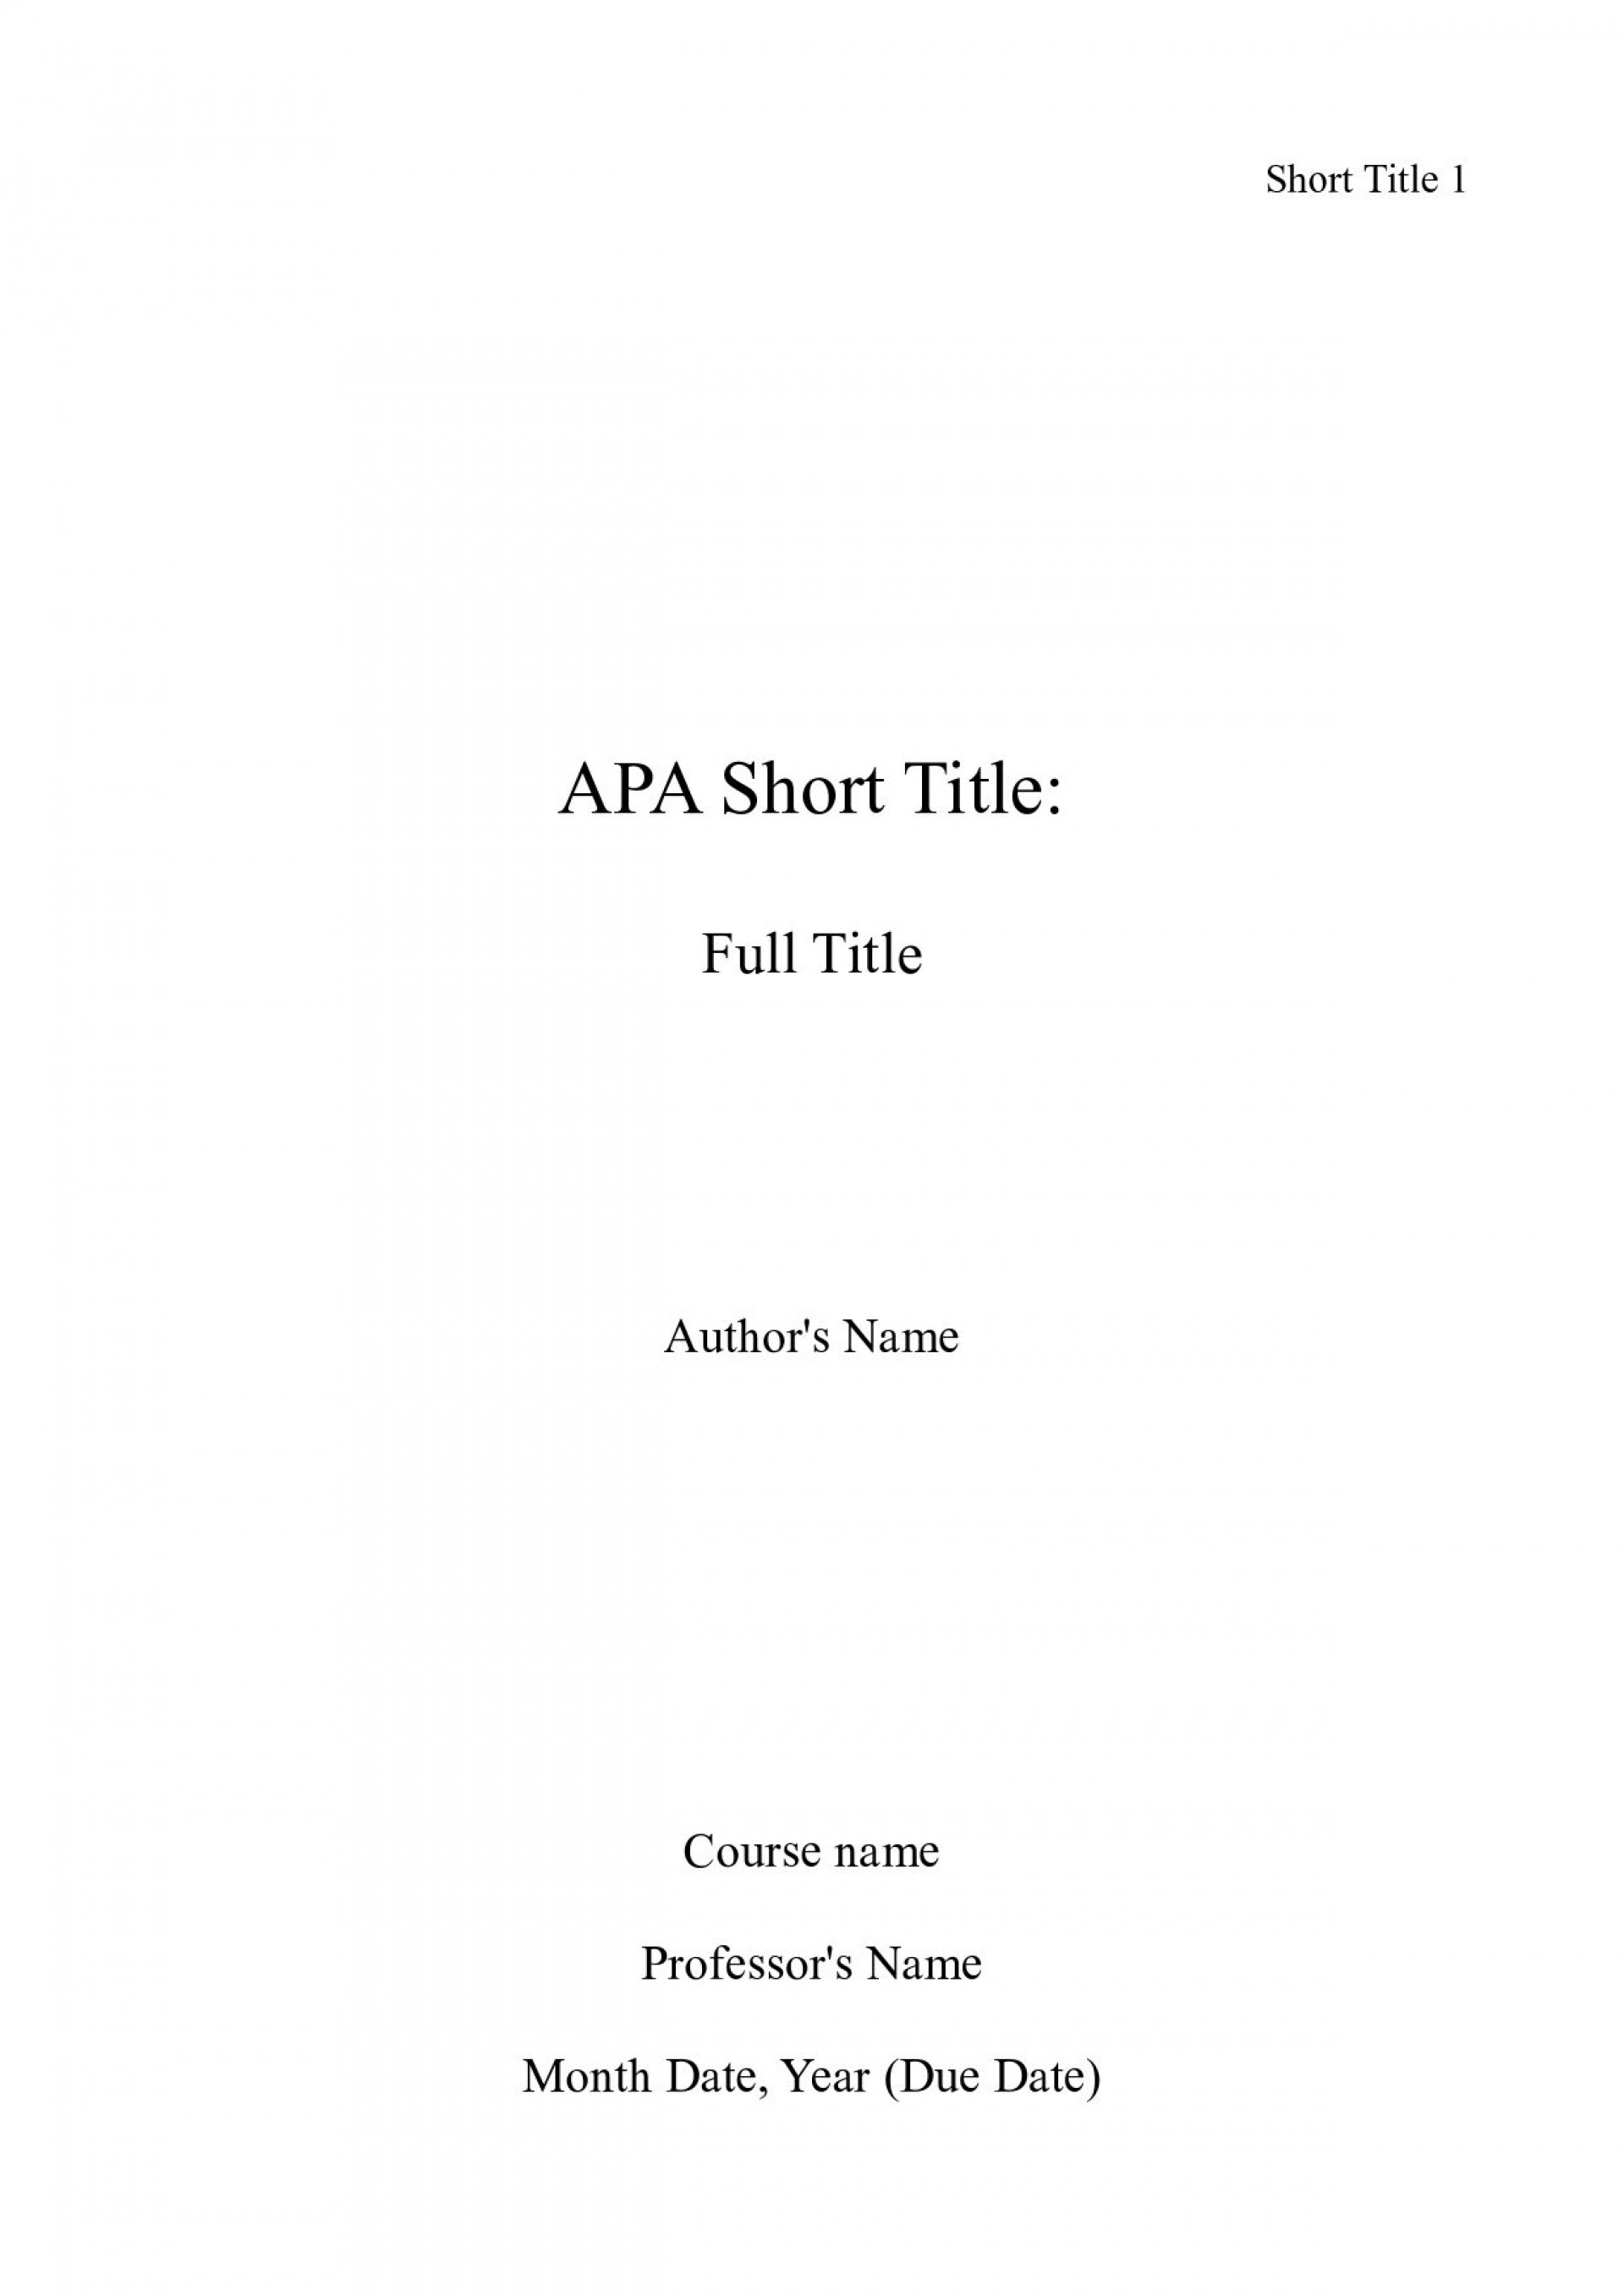 006 Cover Page For Research Paper Apa Incredible Format How To Do A 1920